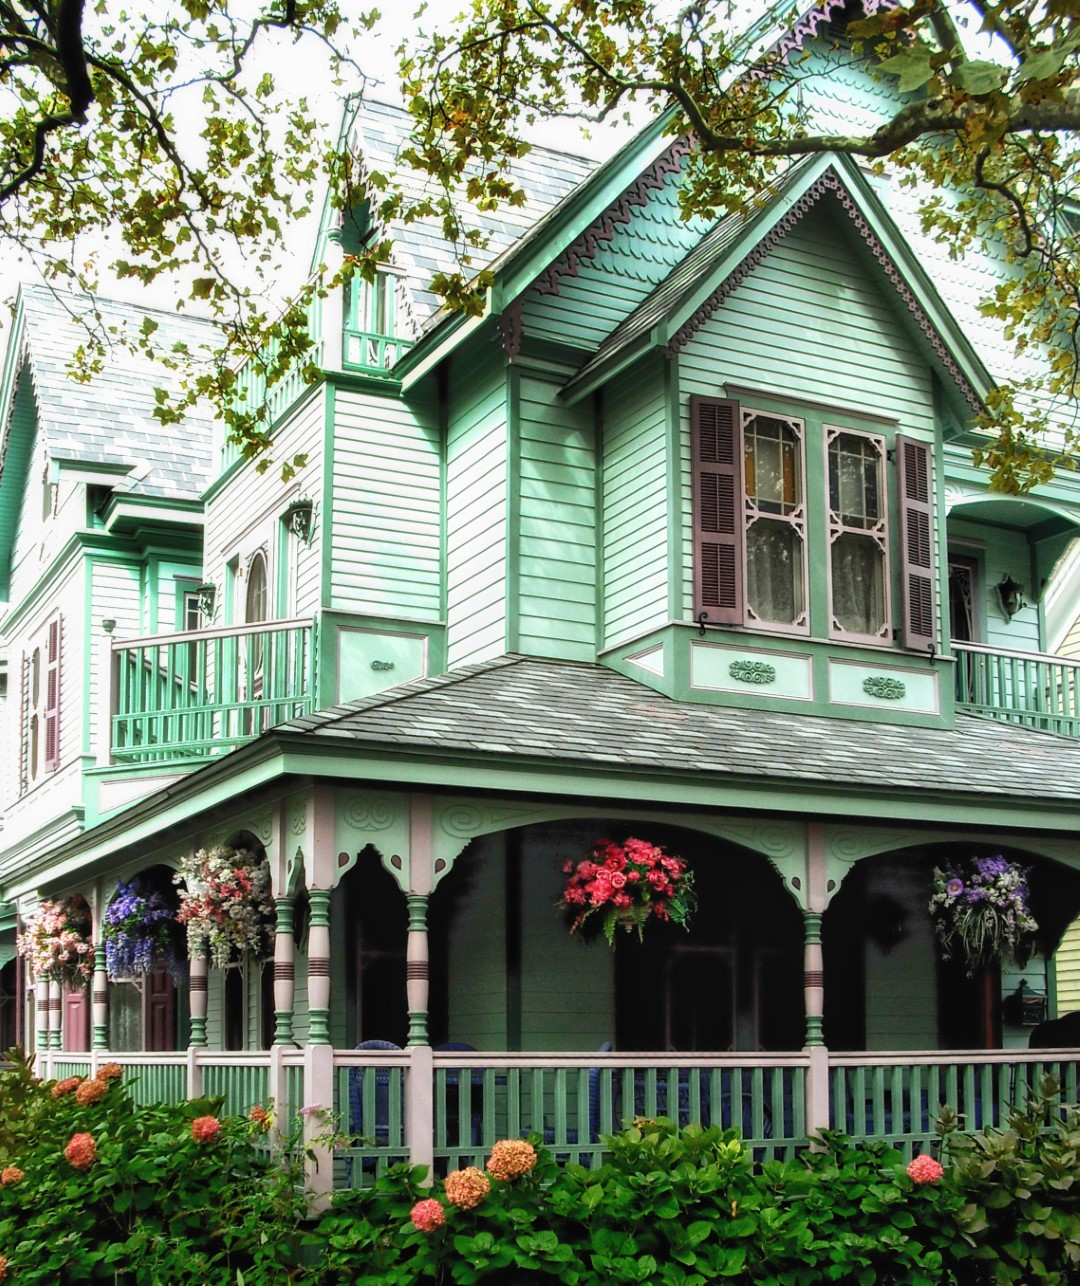 Green Victorian house with porch